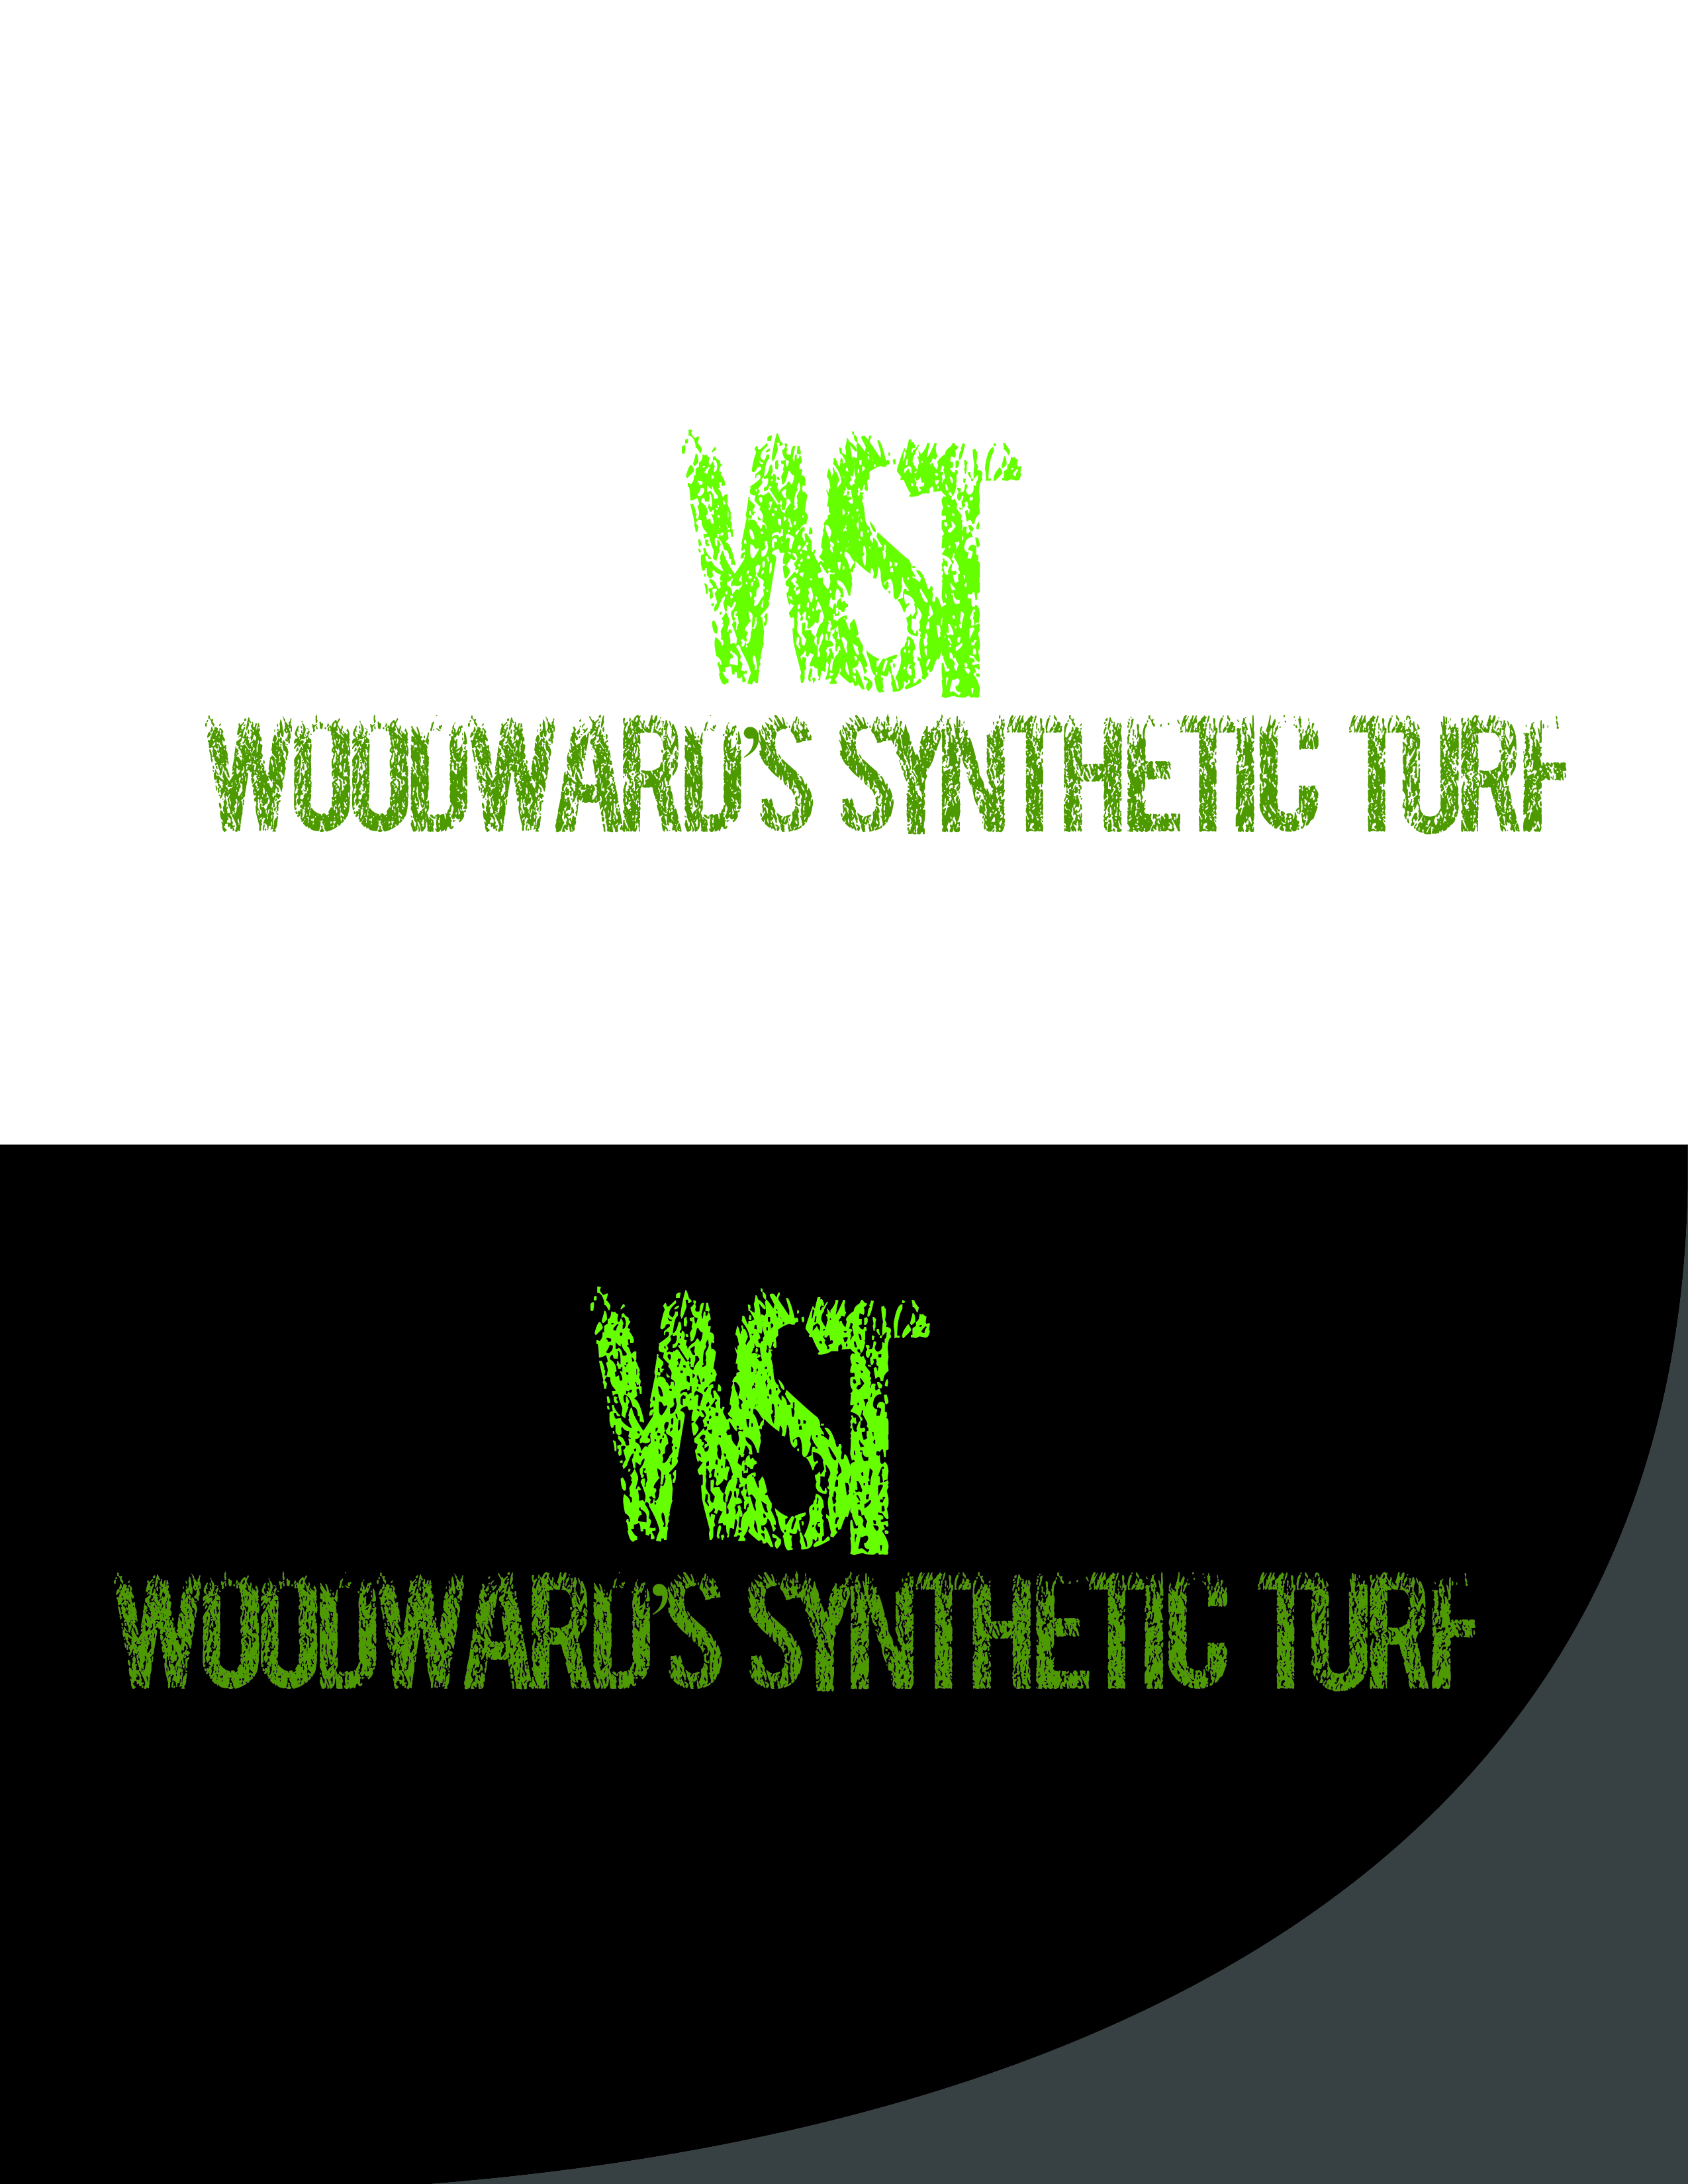 Logo Design by AQIB SHAIKH - Entry No. 31 in the Logo Design Contest Artistic Logo Design for Woodward's Synthetic Turf.